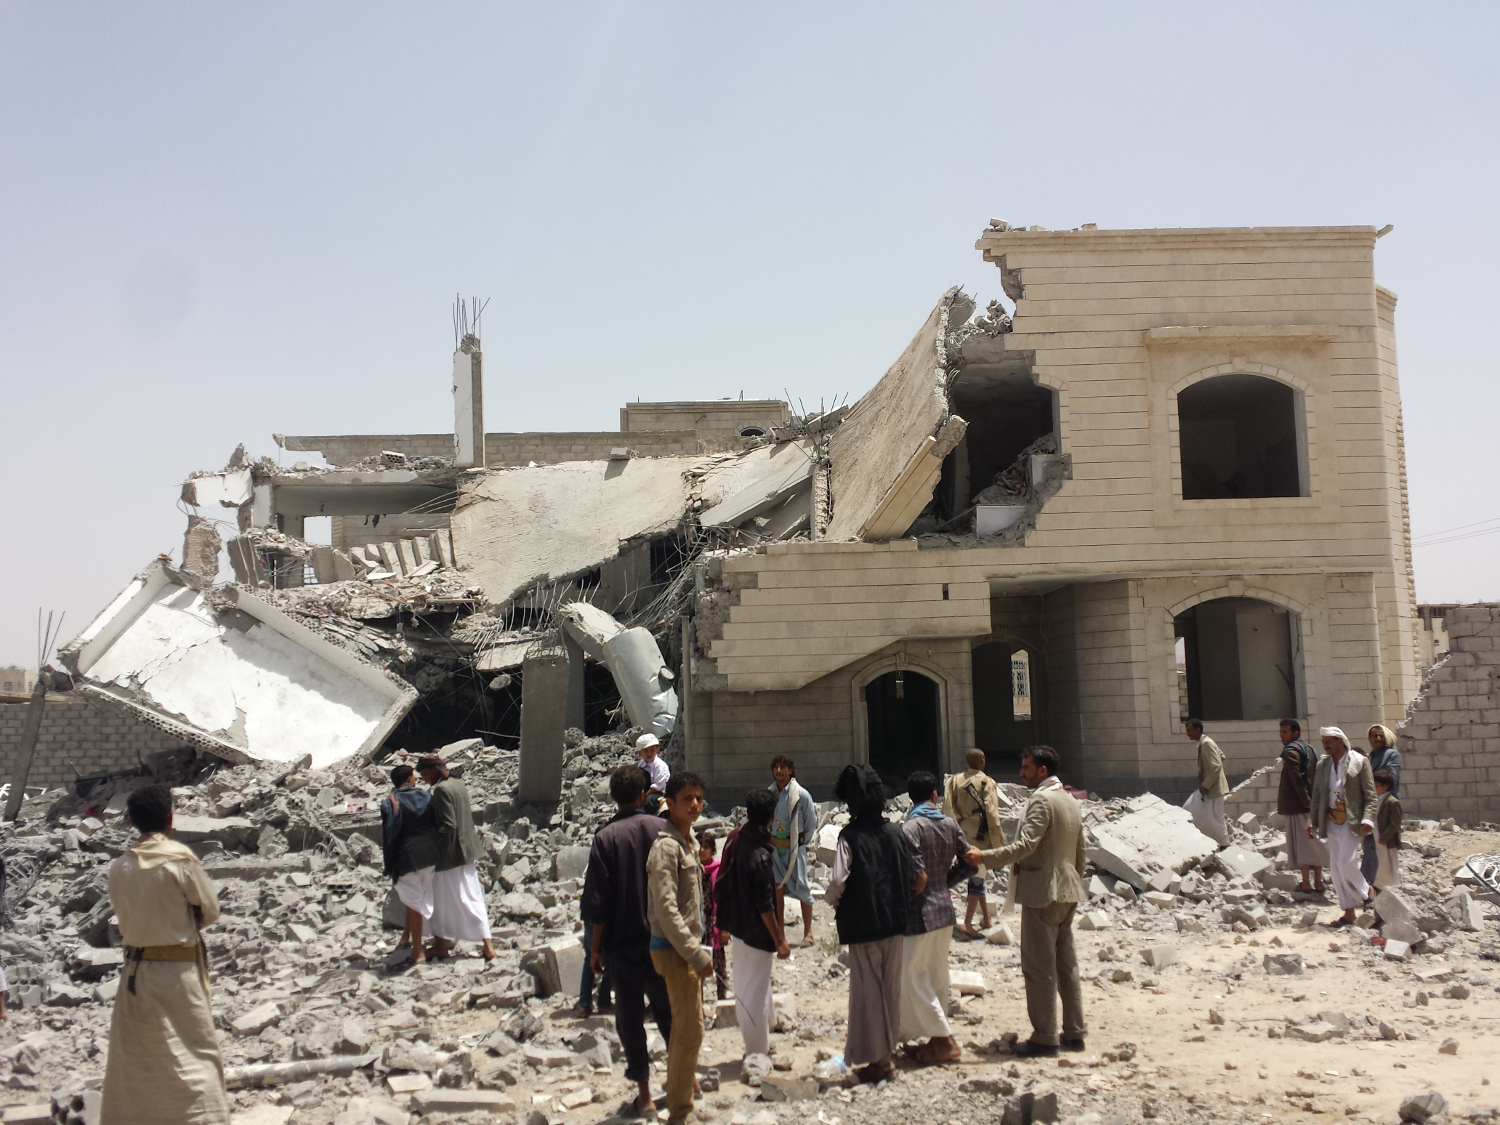 U.S. Support for the Saudi Regime is a Humanitarian Disaster